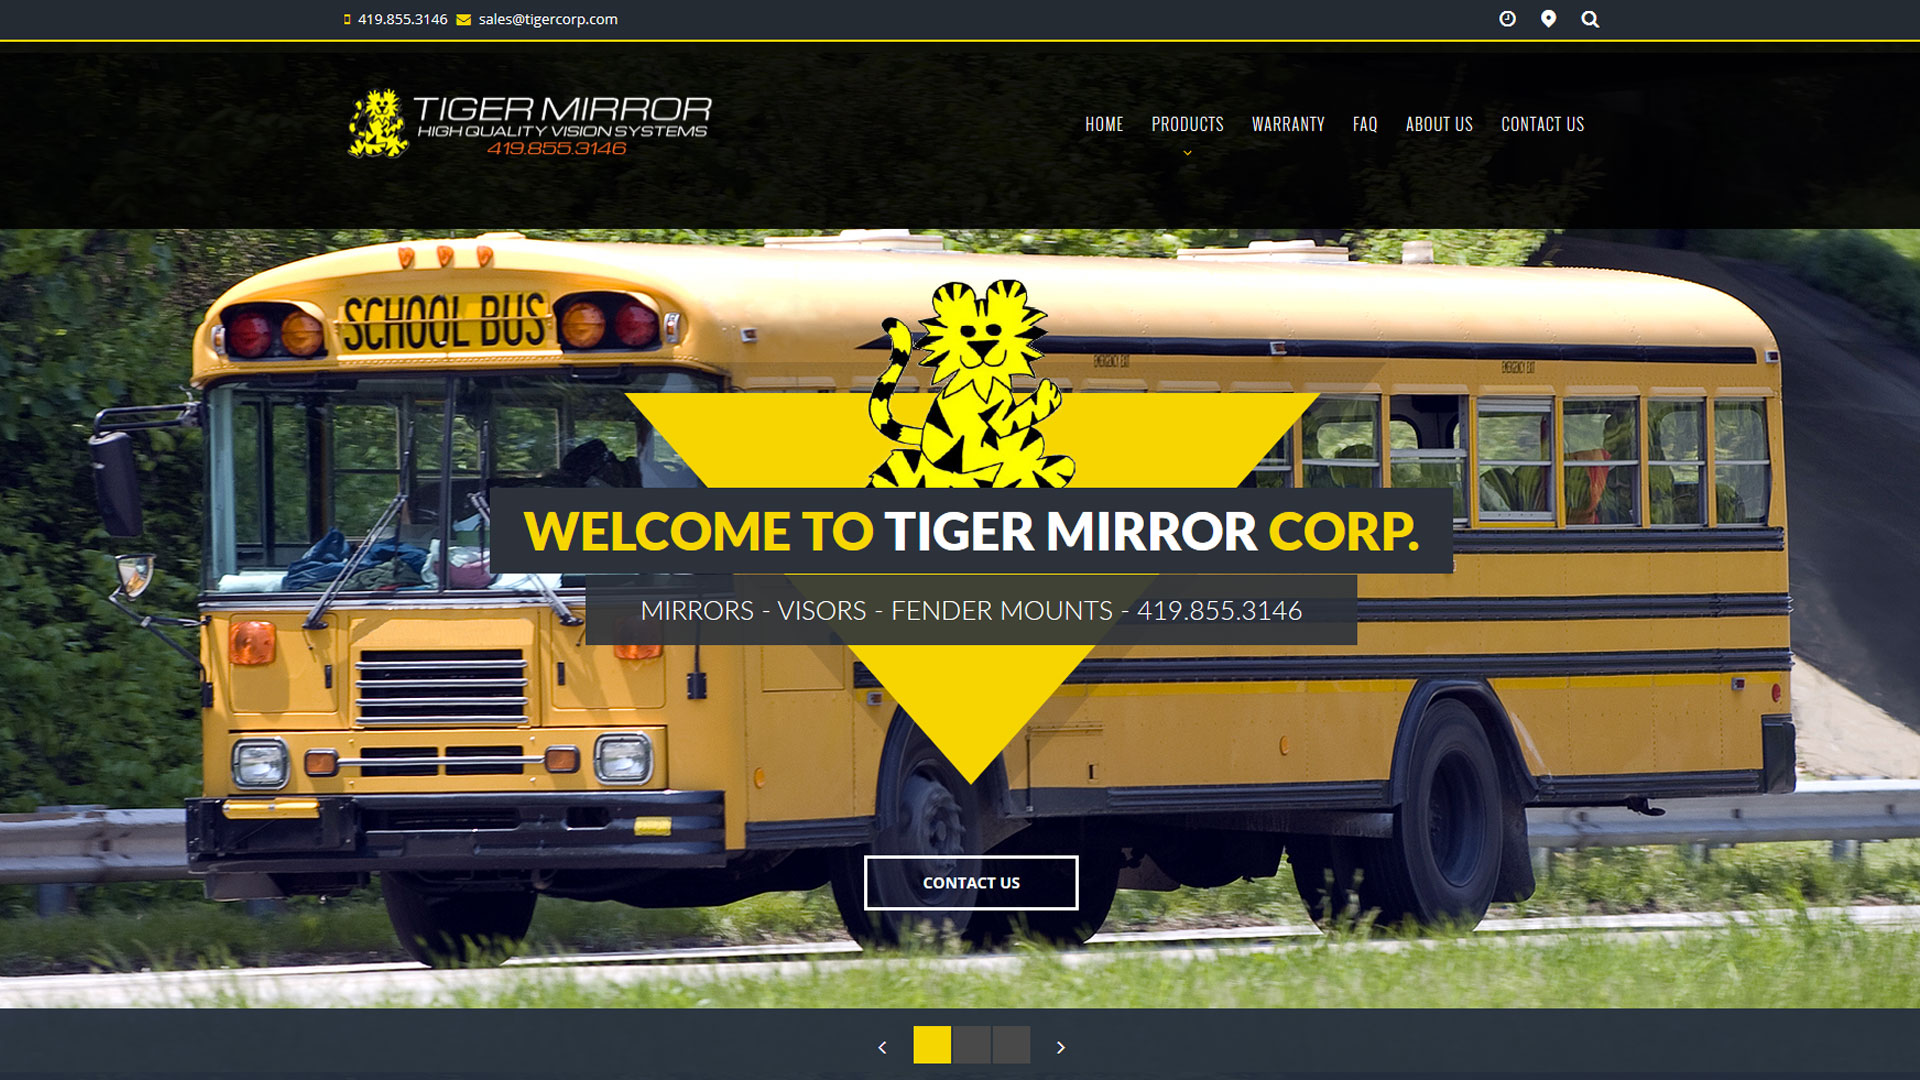 Tiger Mirror Corp. – Clay Center, Ohio